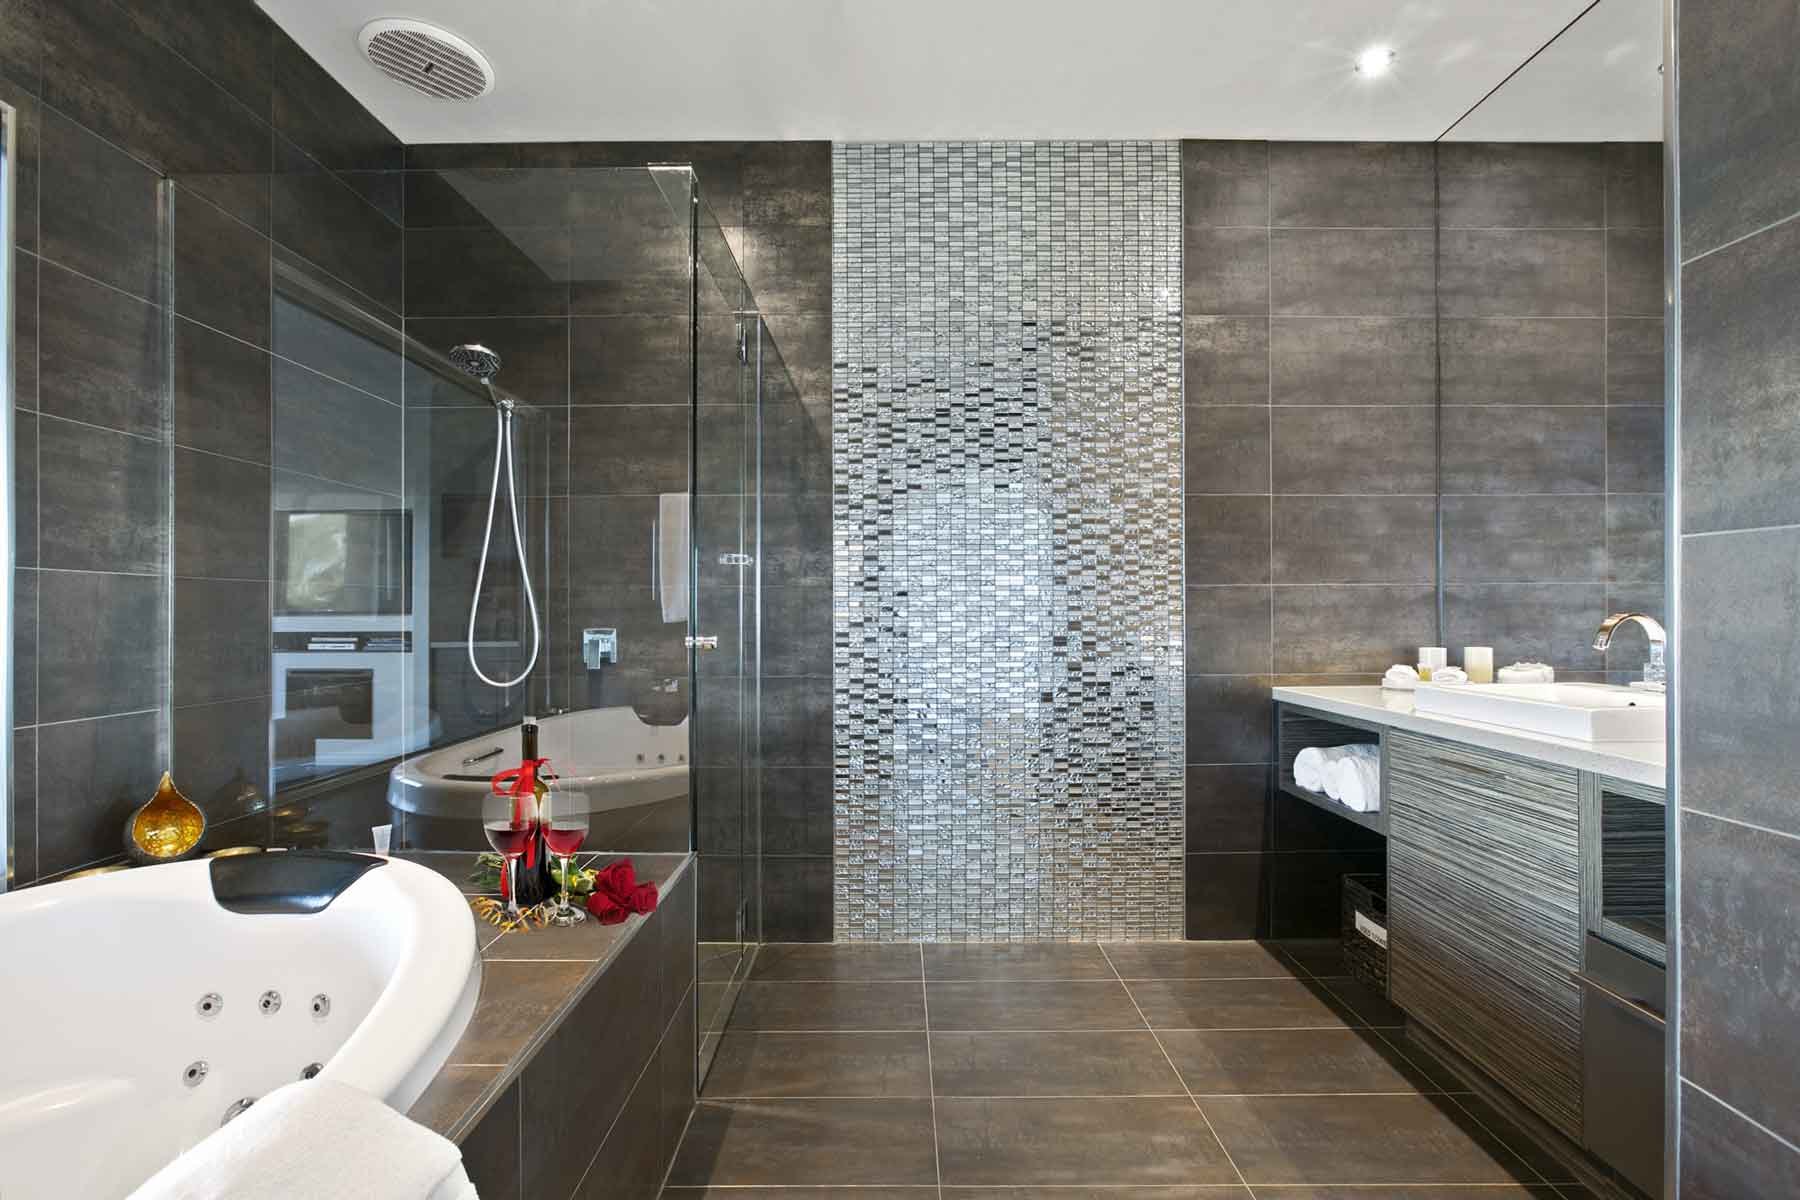 Luxury Spa Bath at Arthurs Views Victorian Couples Retreat